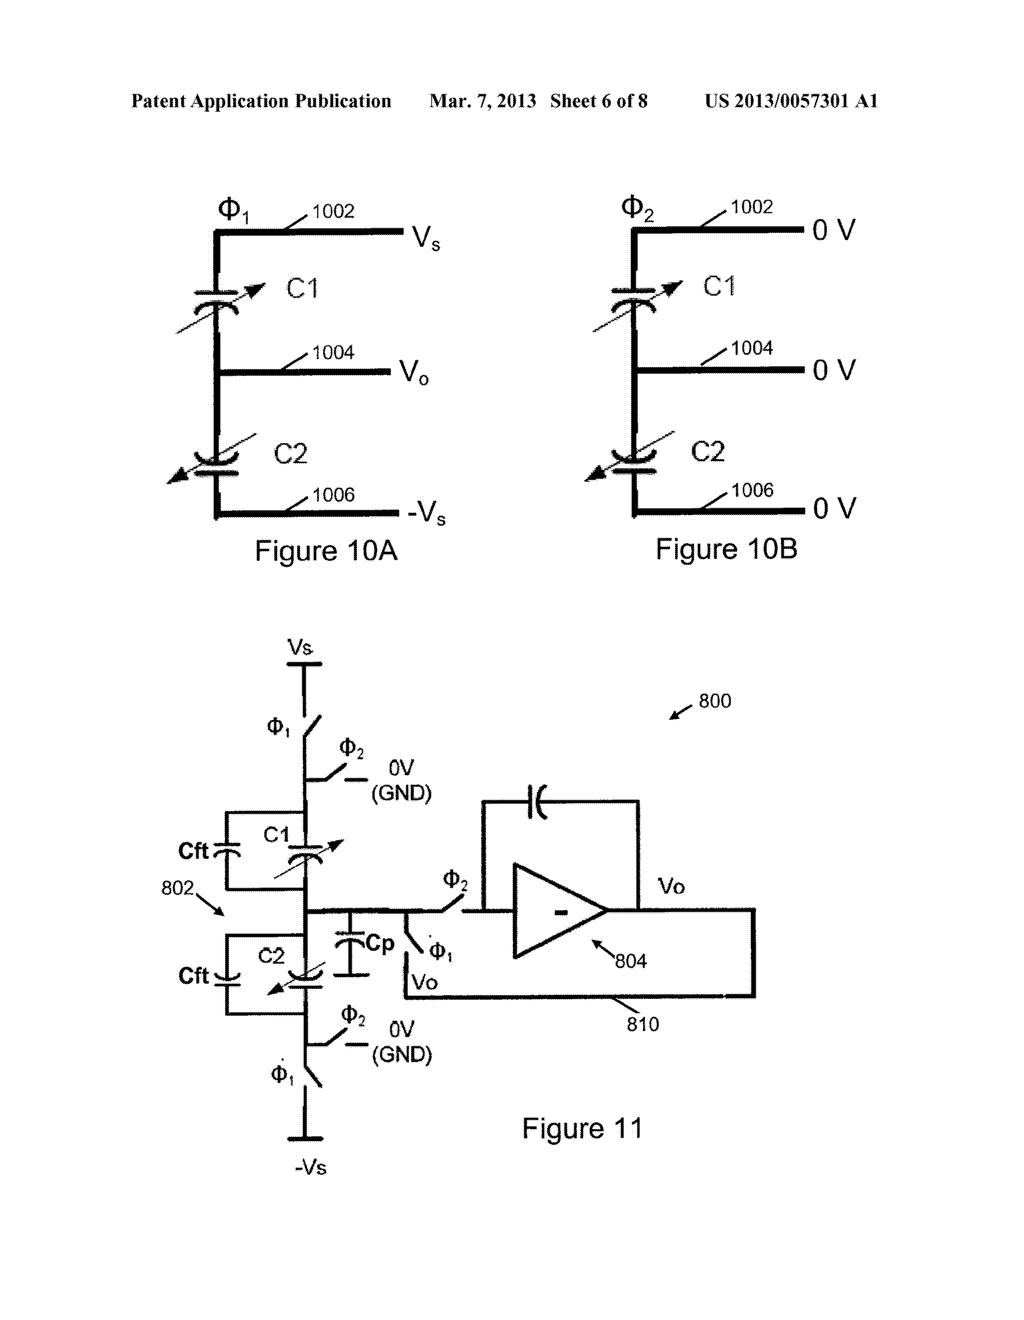 LINEAR CAPACITANCE-TO-VOLTAGE CONVERTER USING A SINGLE AMPLIFIER FOR     ACCELEROMETER FRONT ENDS WITH CANCELLATION OF SPURIOUS FORCES CONTRIBUTED     BY SENSOR CIRCUITRY - diagram, schematic, and image 07